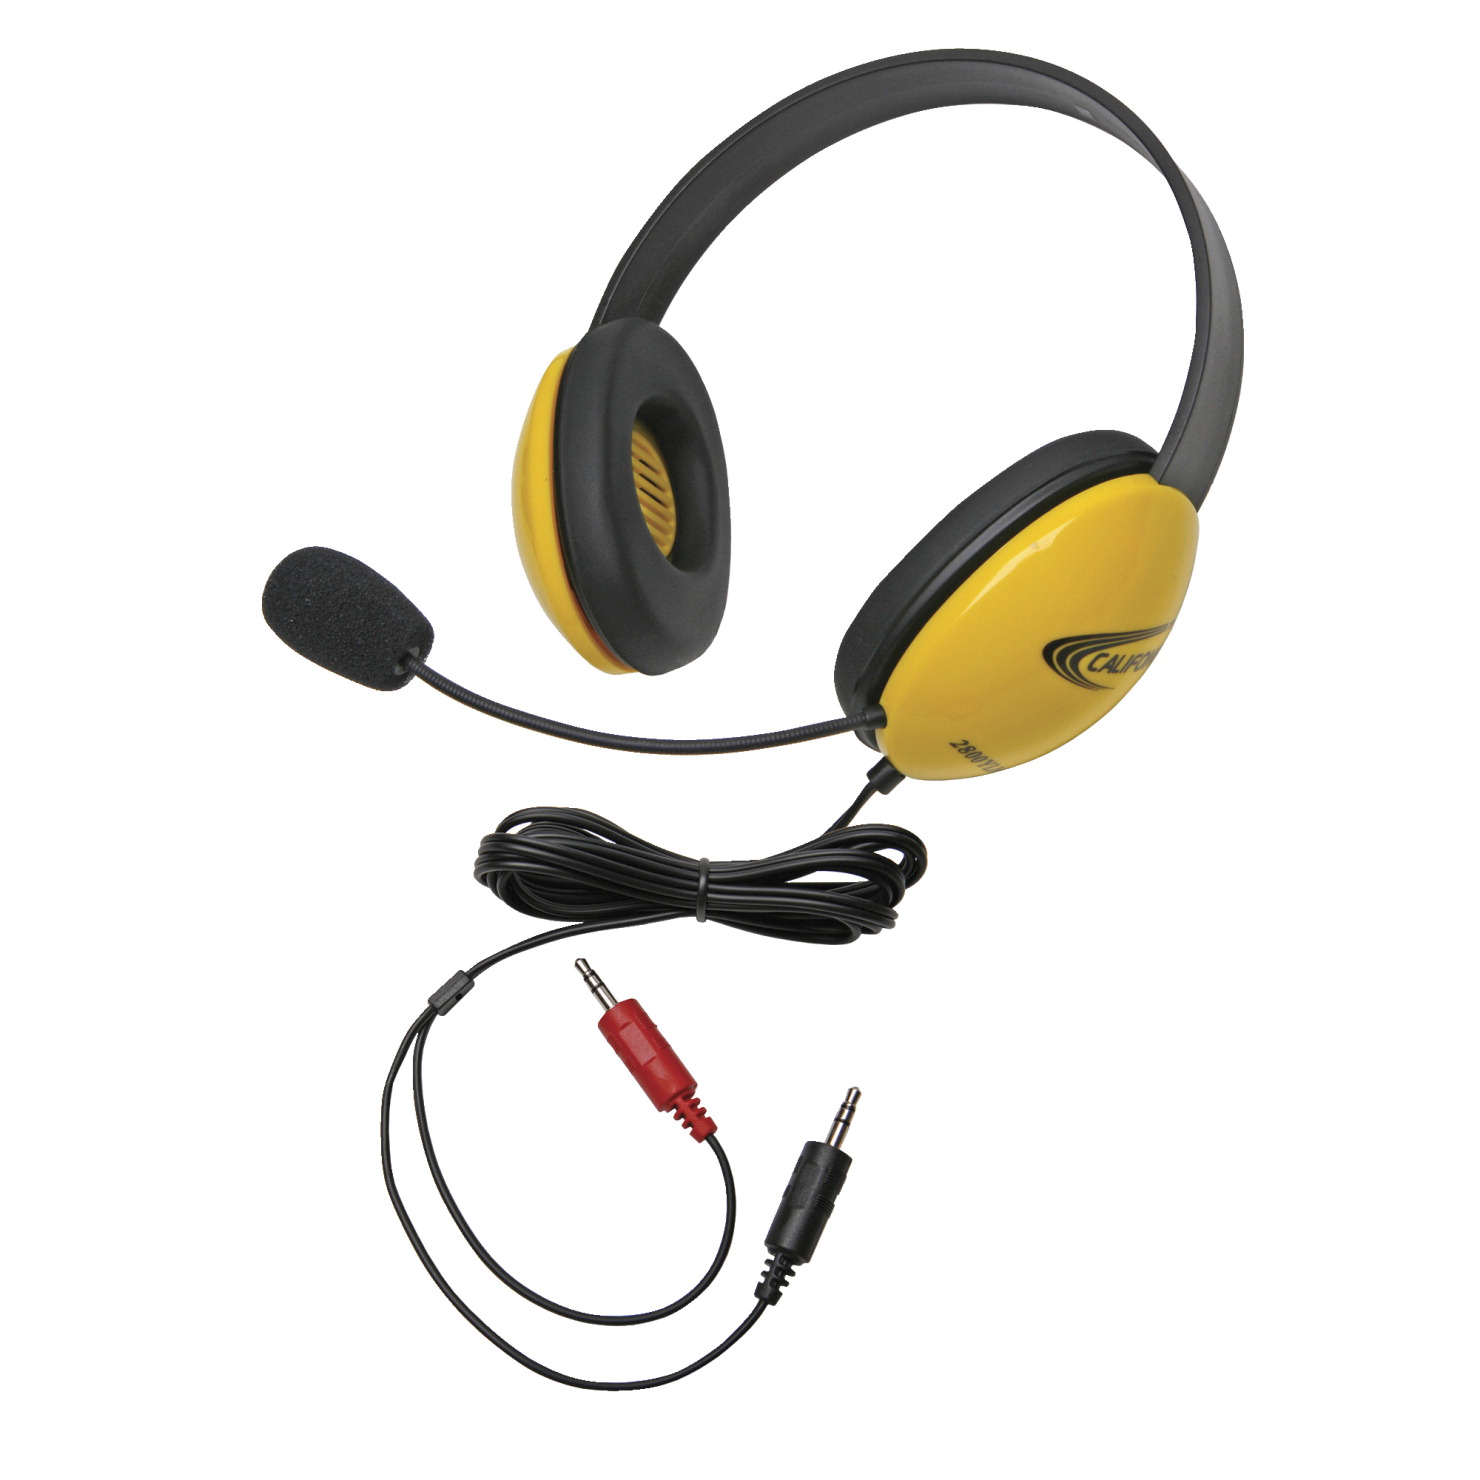 Califone Listening First 2800YL-AV Over-Ear Stereo Headset with Gooseneck Microphone, Dual 3.5mm Plug, Yellow, Each